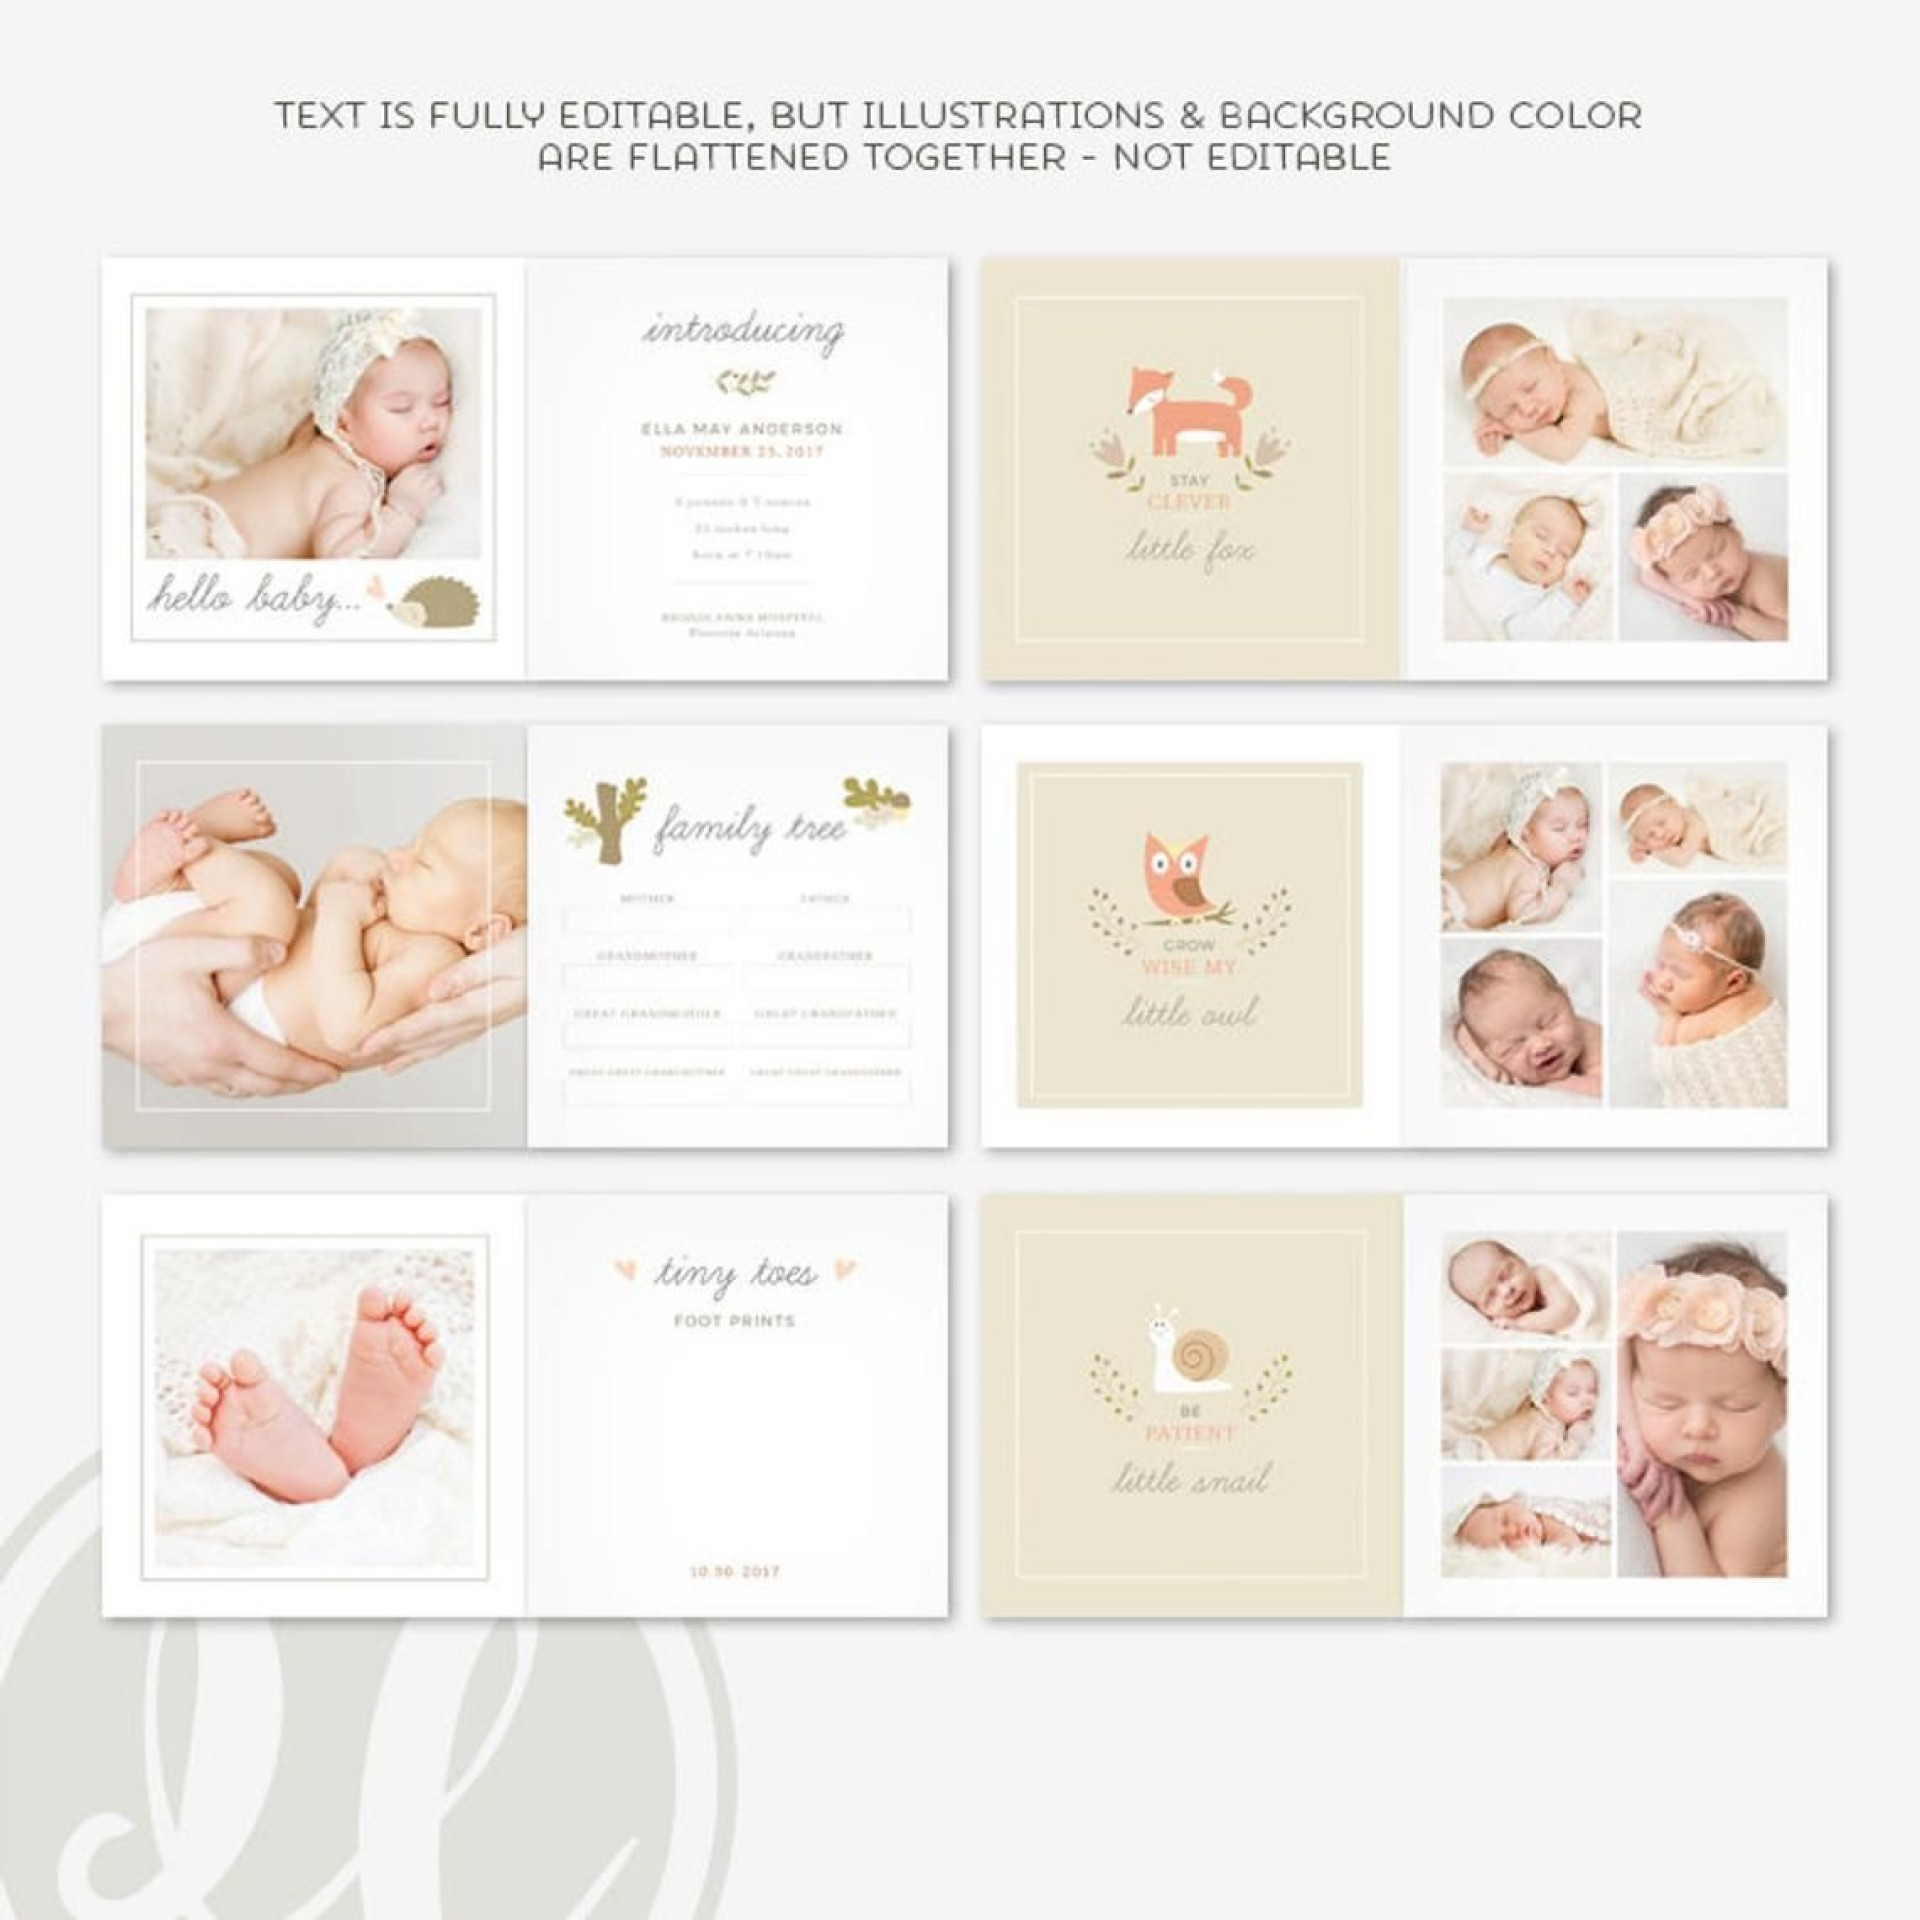 010 Unbelievable Family Tree For Baby Book Template High Definition  Printable1920